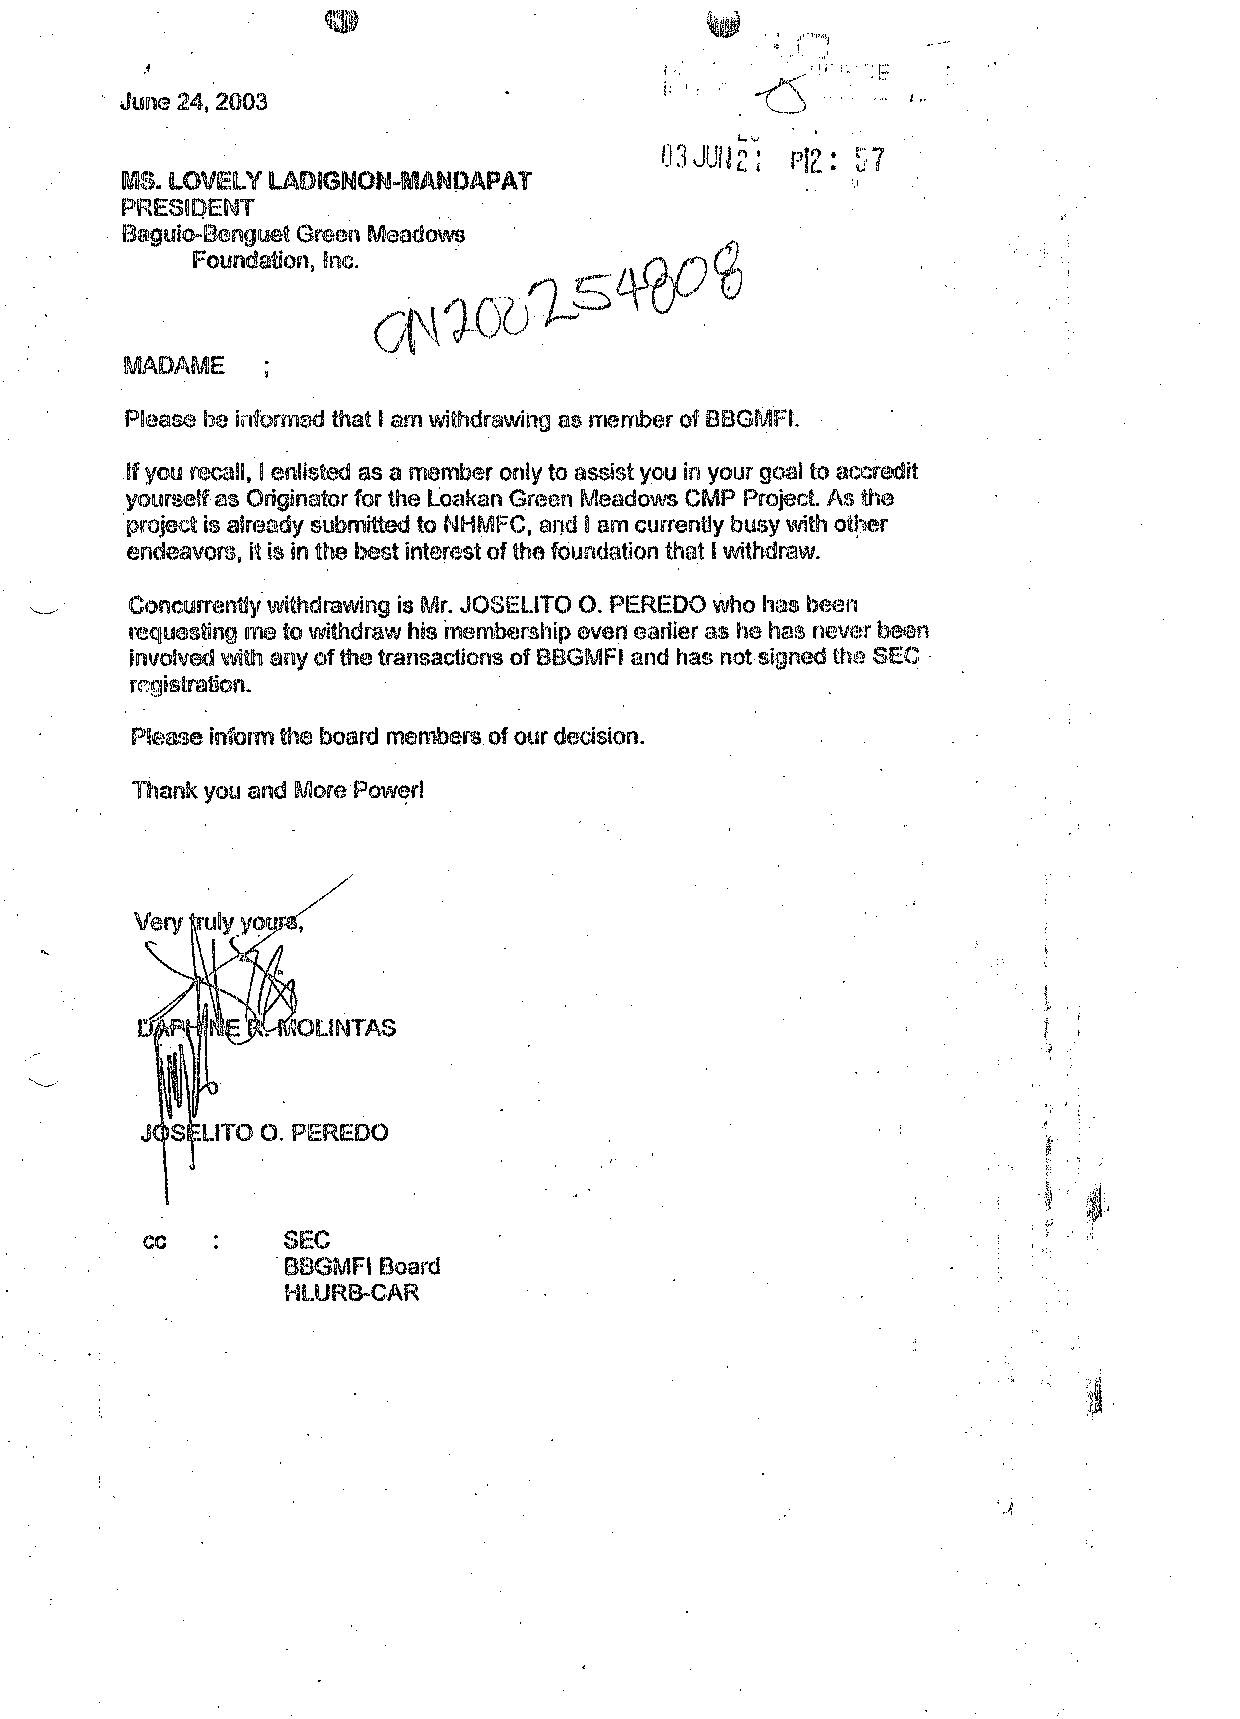 23 June 2003 letter copied to the Securities and Exchange Commission ...